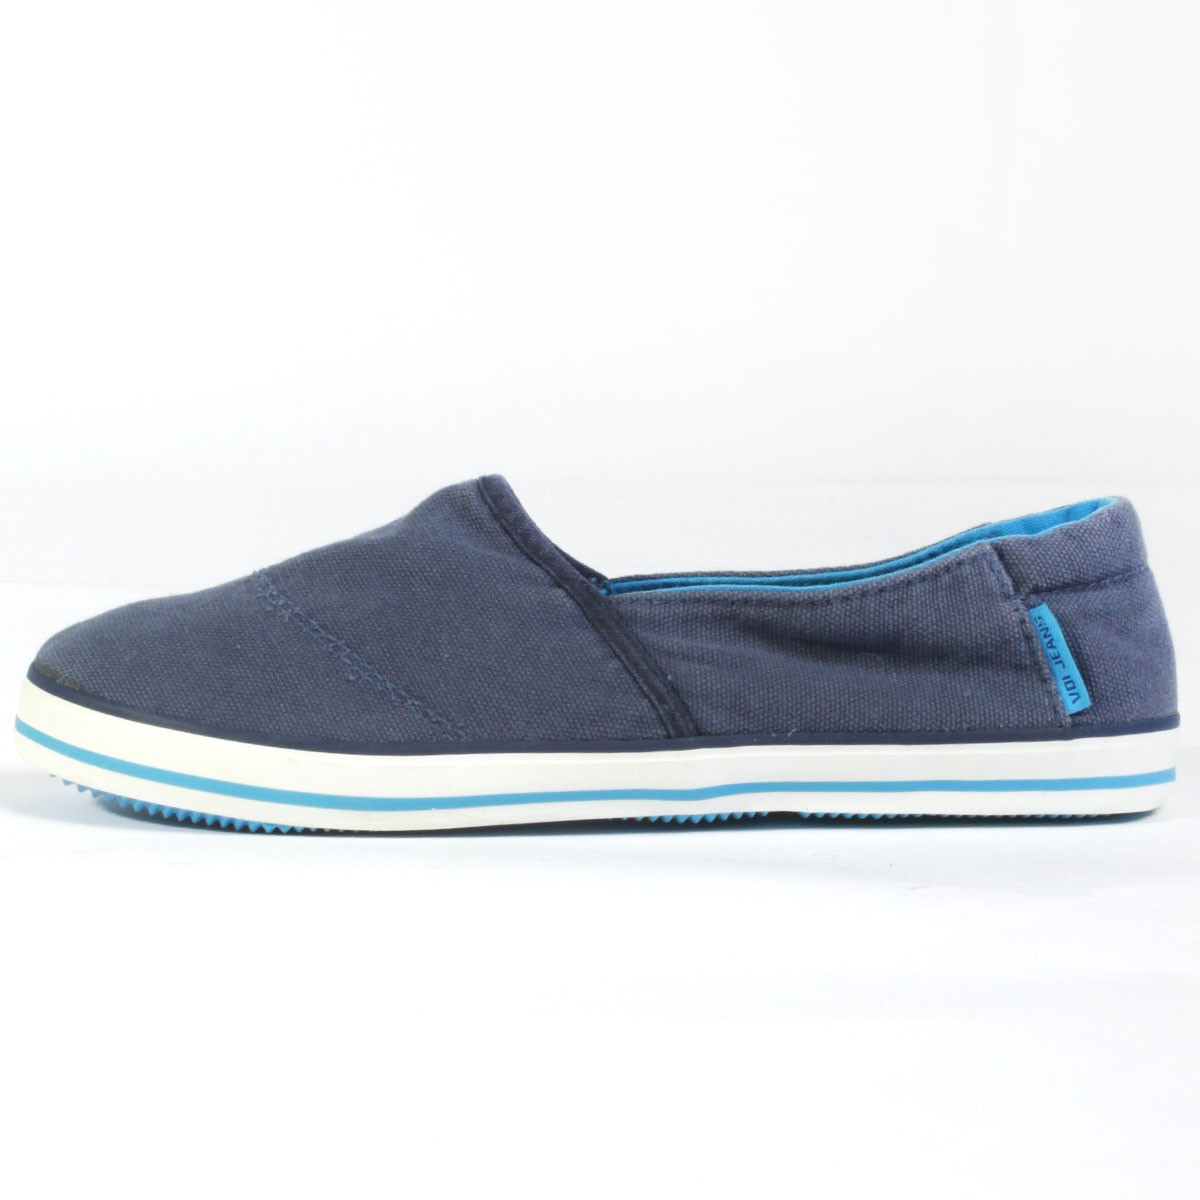 Mens Voi Jeans Plimsolls 'Sundance ' Slip On Espadrilles With V Logo Shoe Plimso Enlarged Preview